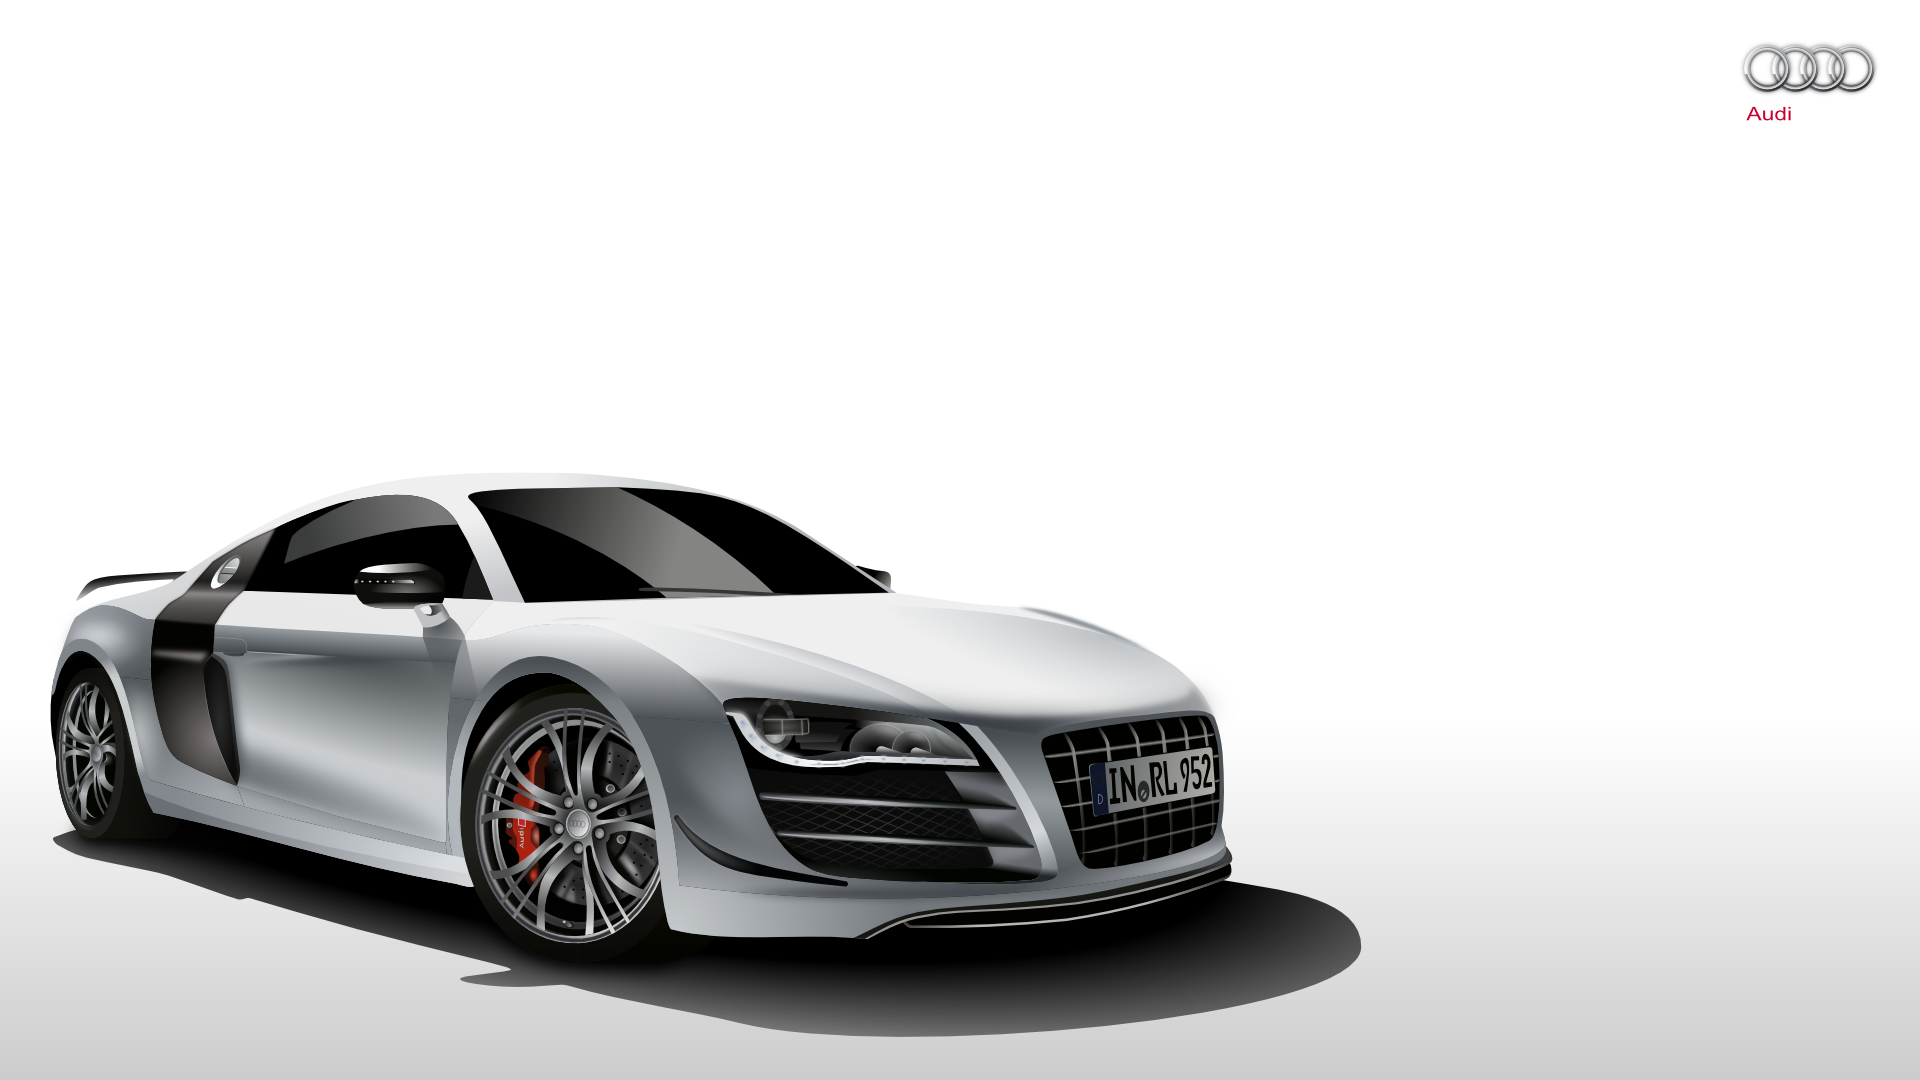 white cars germany gray HD Wallpaper